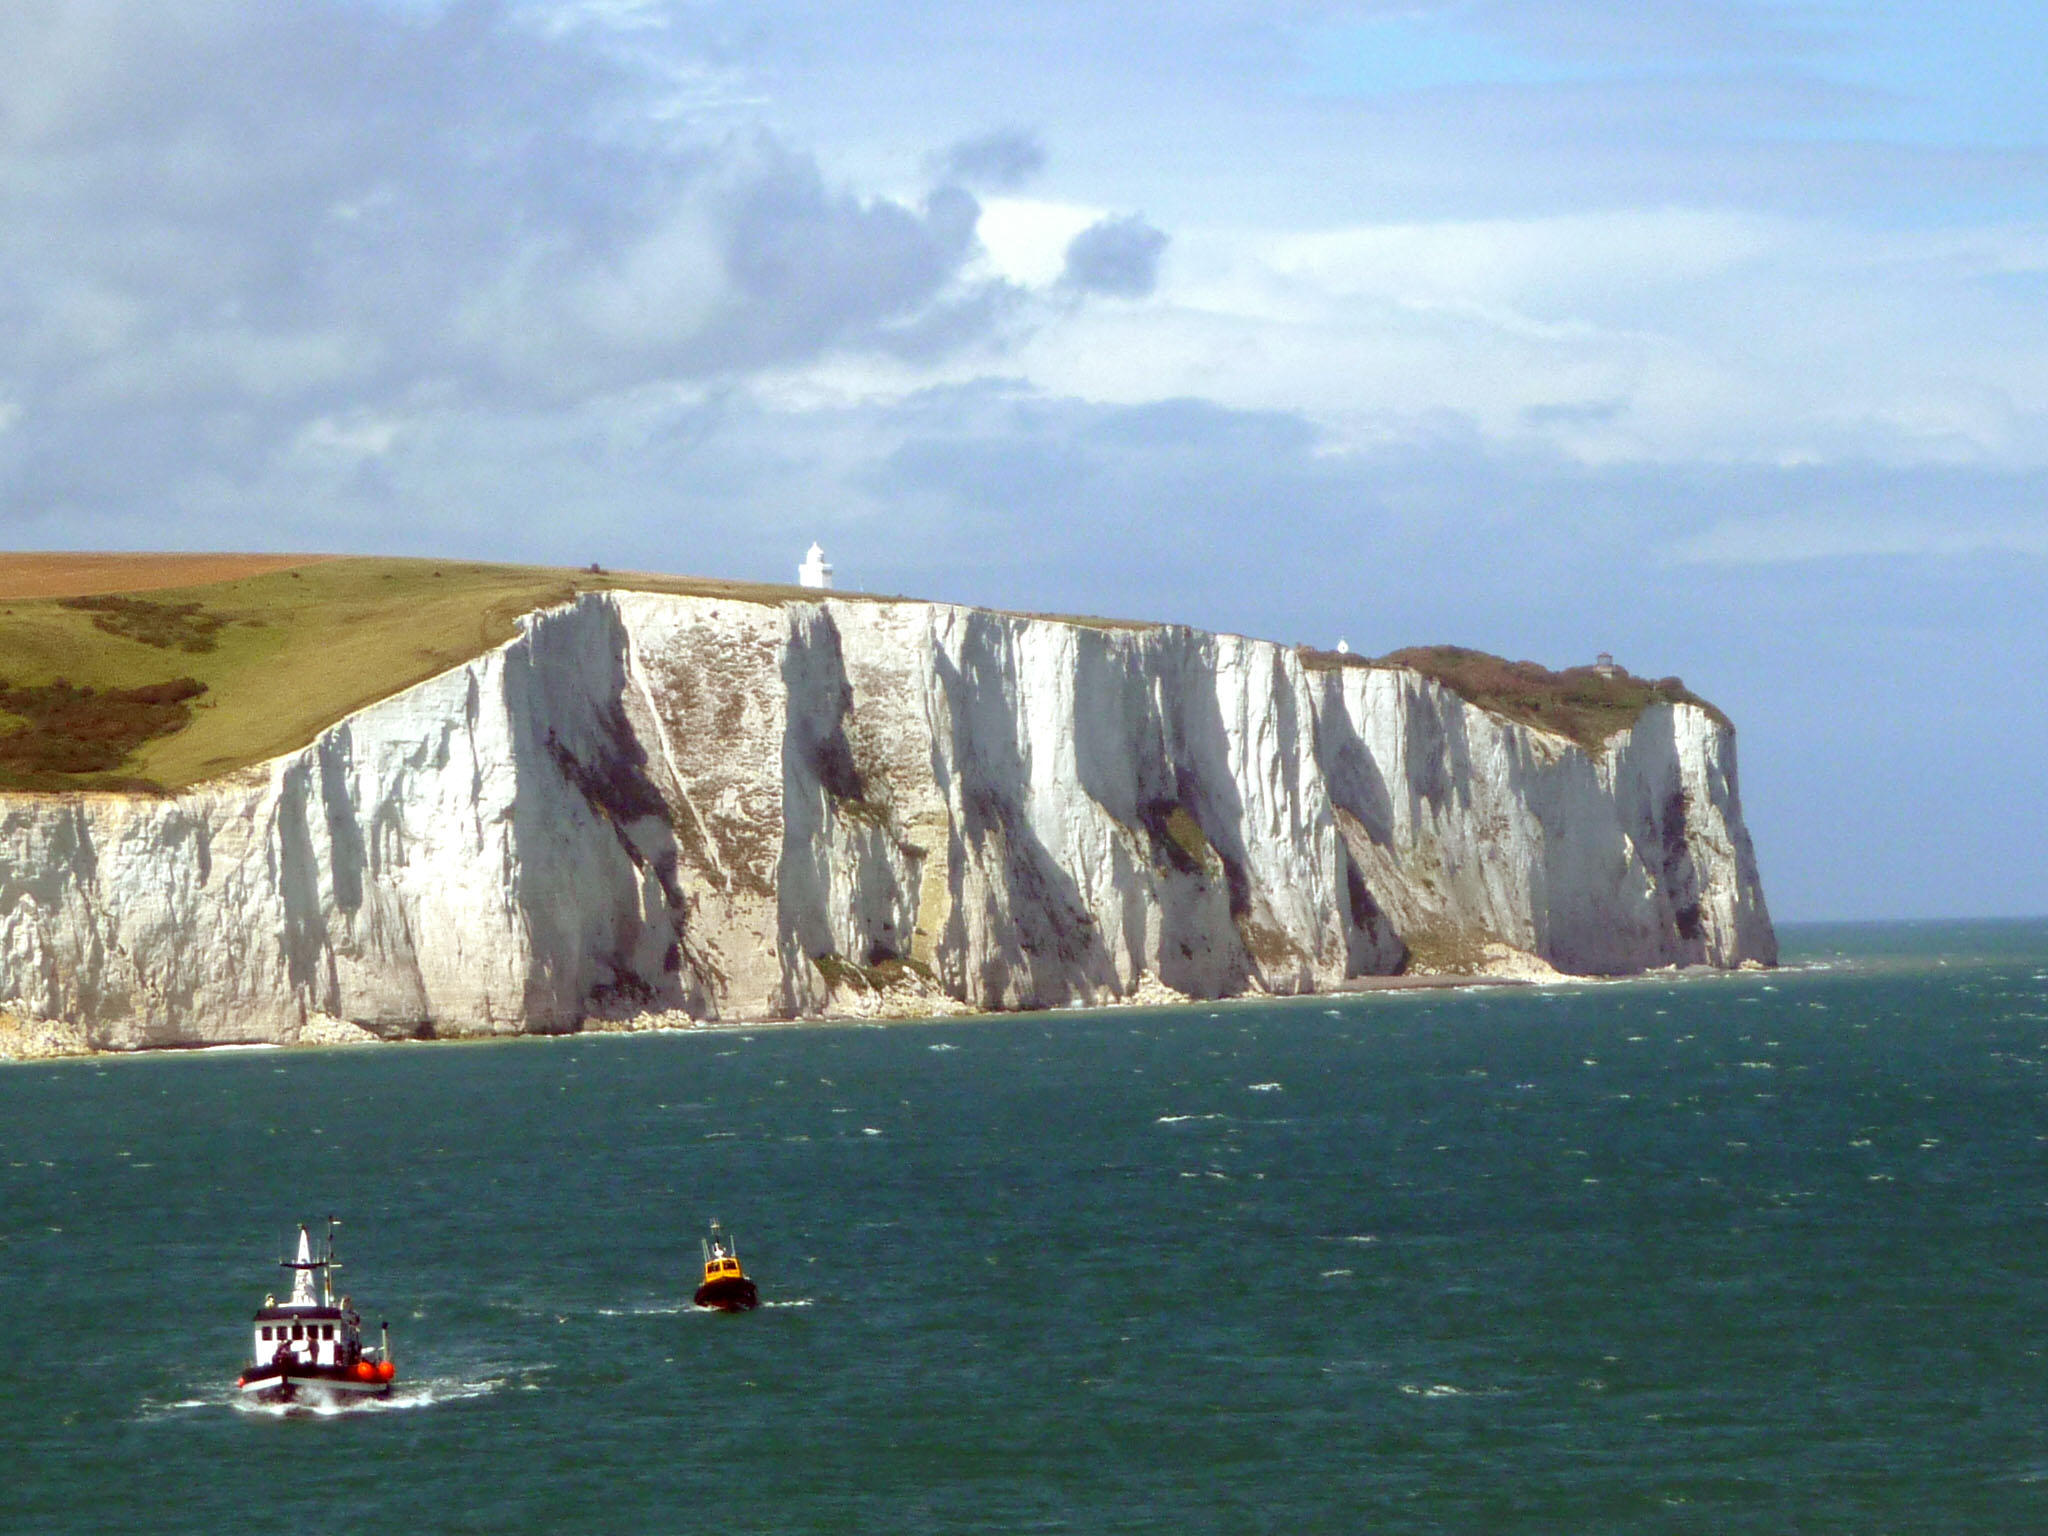 The White Cliffs of Dover viewed from the Strait of Dover. Photo taken on July 10, 2012.